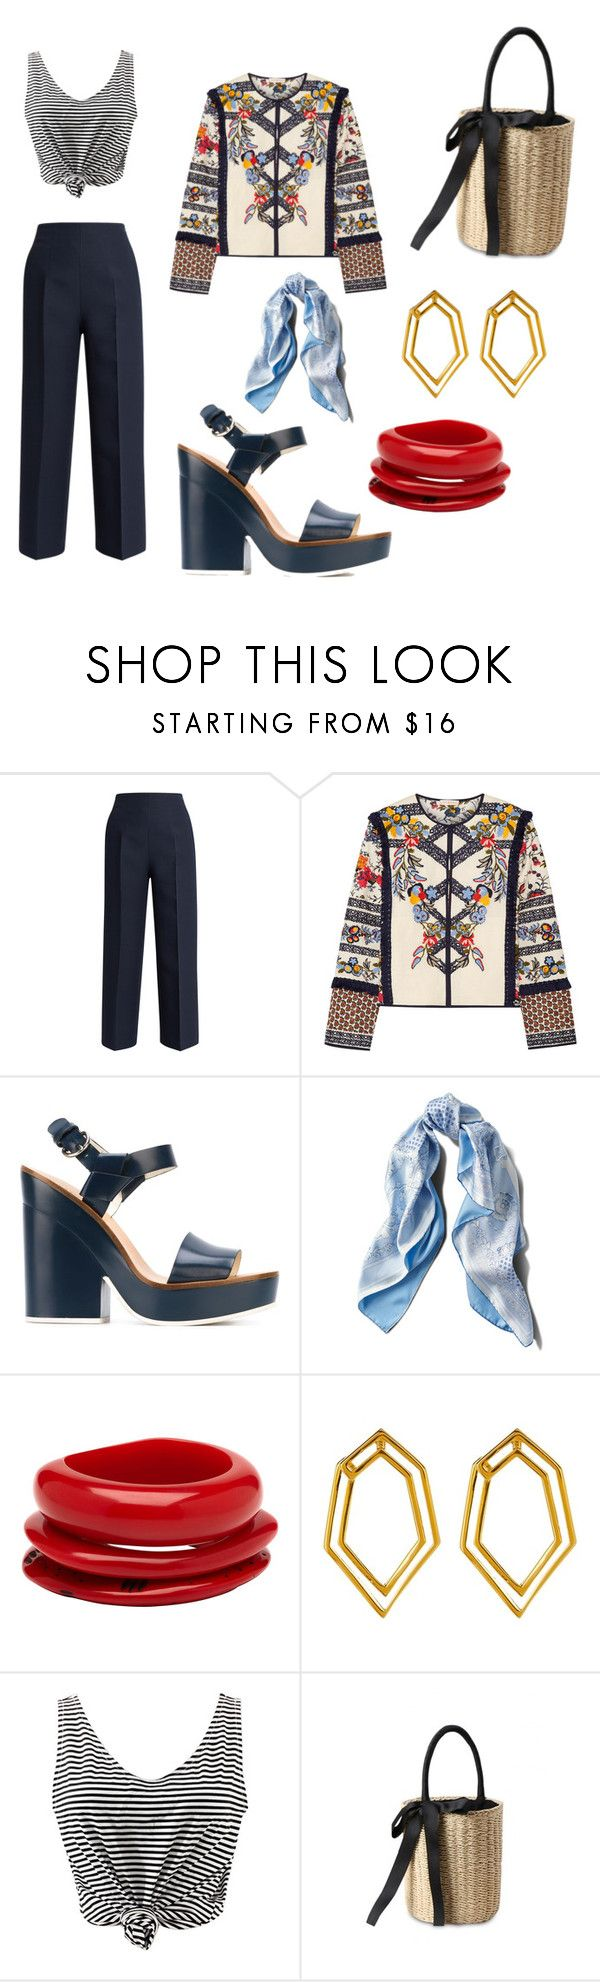 """Karou"" by evmegi ❤ liked on Polyvore featuring Fendi, Tory Burch, Jil Sander Navy, Asprey, Mimco, Botkier and WithChic"